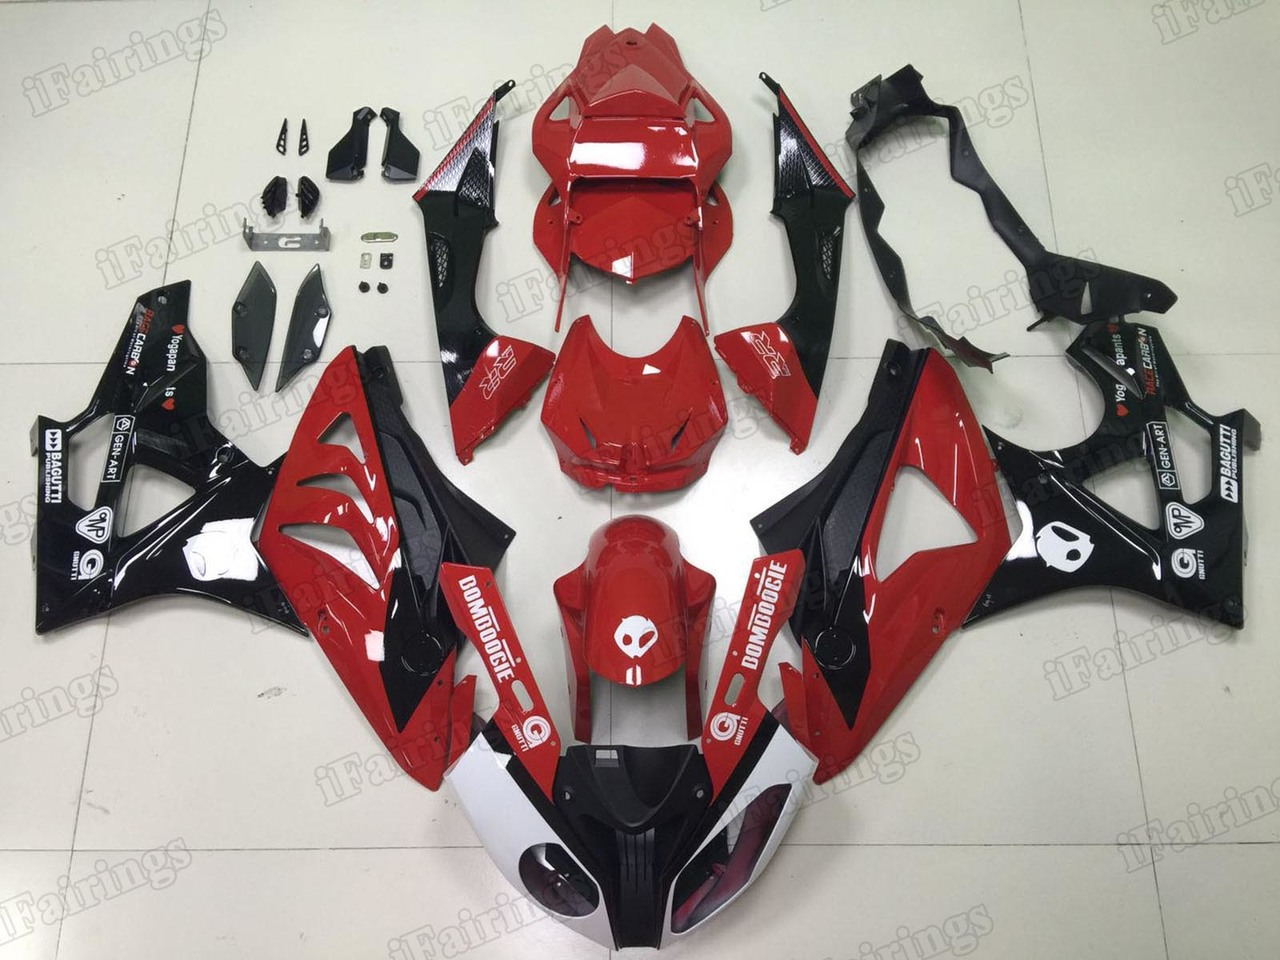 2009 2010 2011 2012 2013 2014 BMW S1000RR red and black fairing kit.